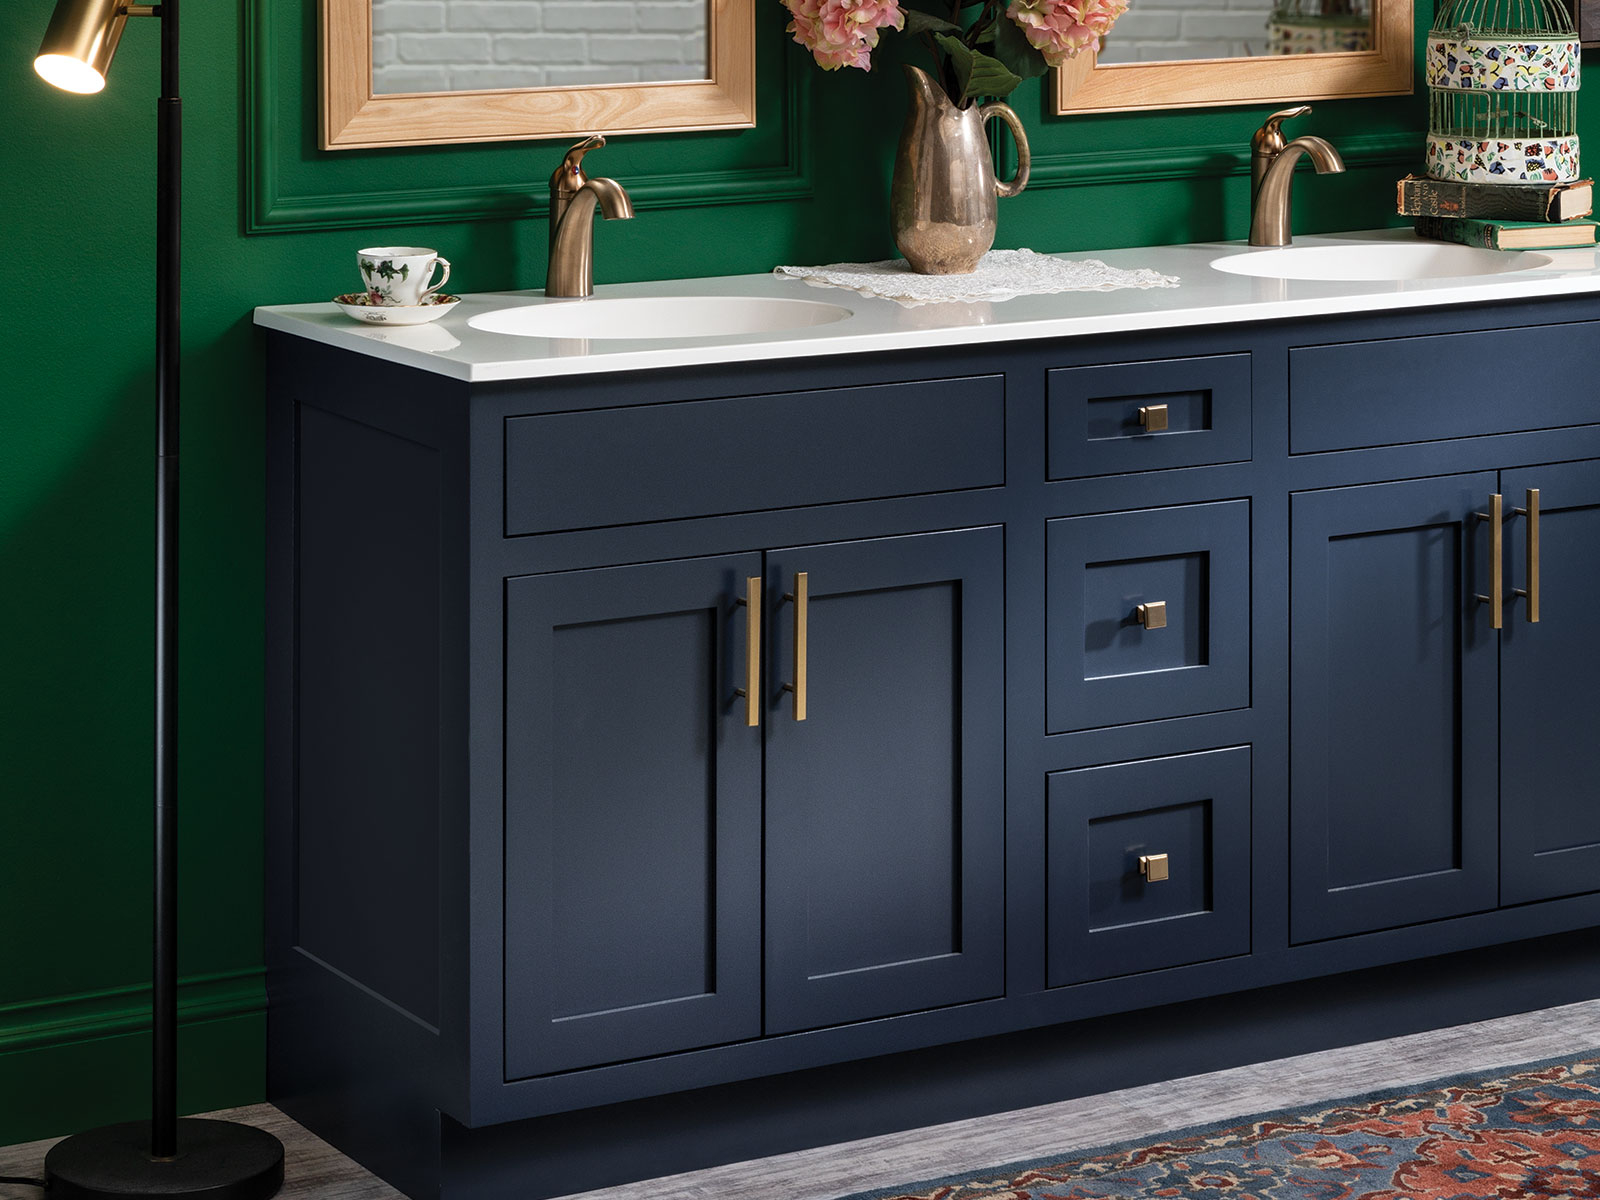 Bath Vanities And Bath Cabinetry Bertch Cabinet Manufacturing throughout sizing 1600 X 1200